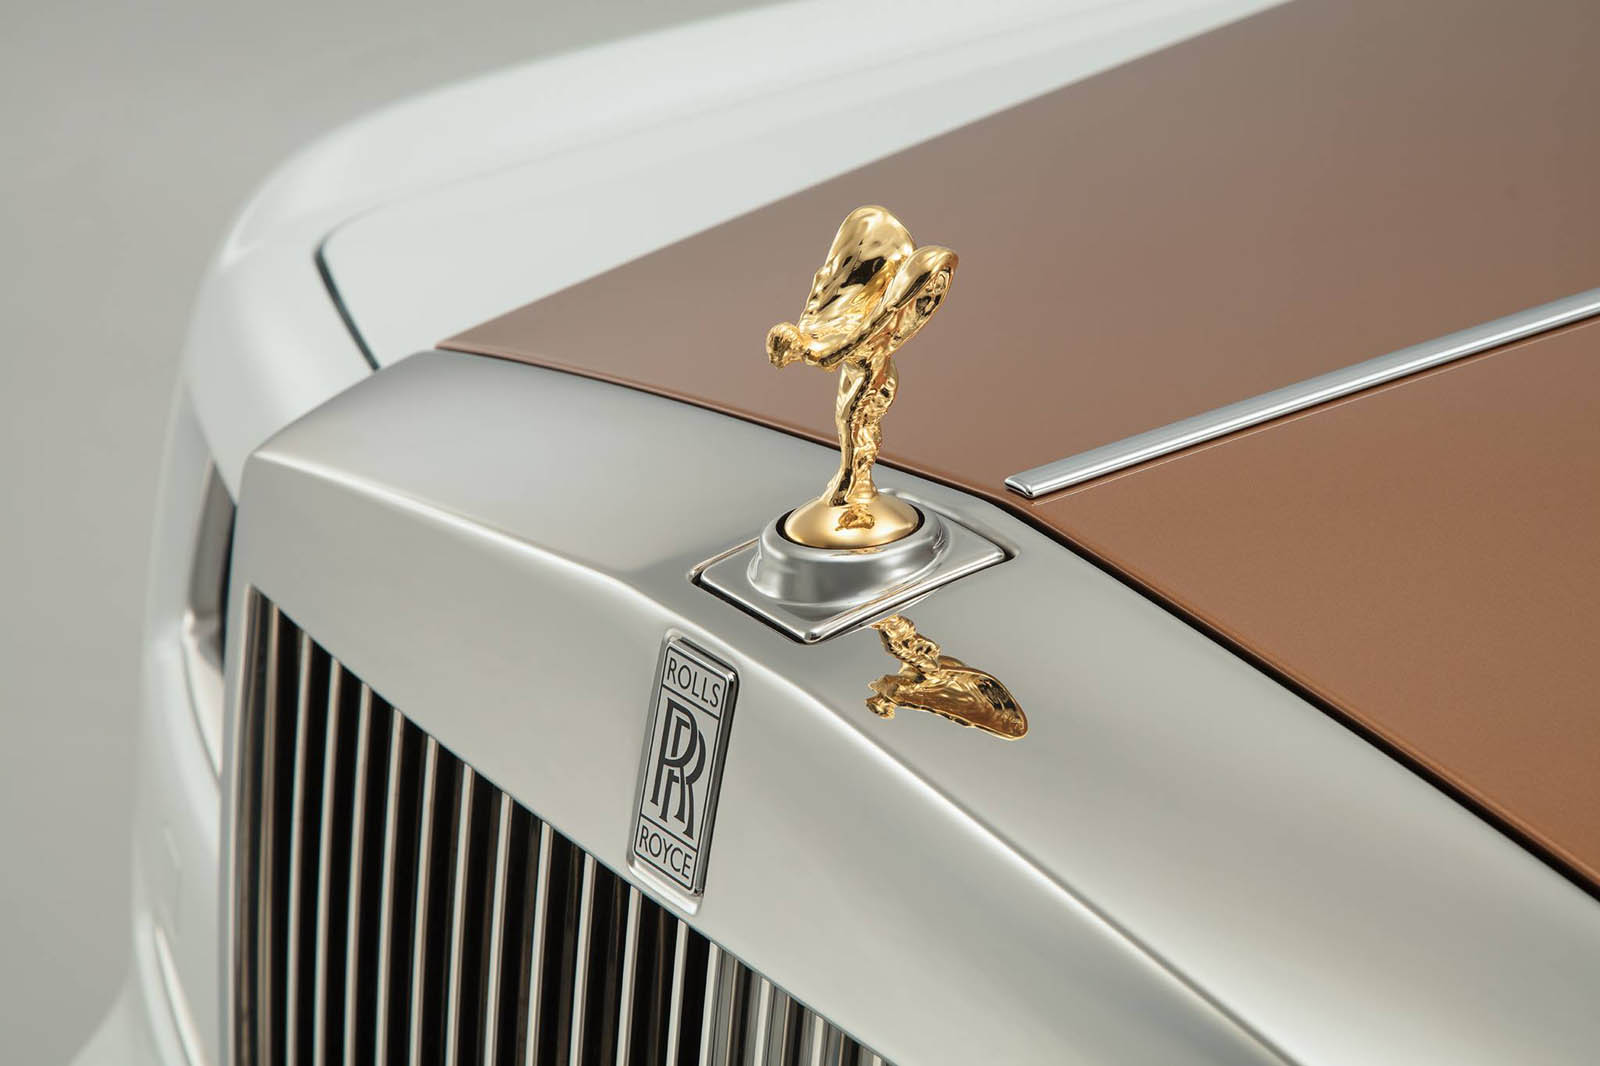 rolls-royce-Phantom-inspired-by-Sheikh-Zayed-Grand-Mosque-09